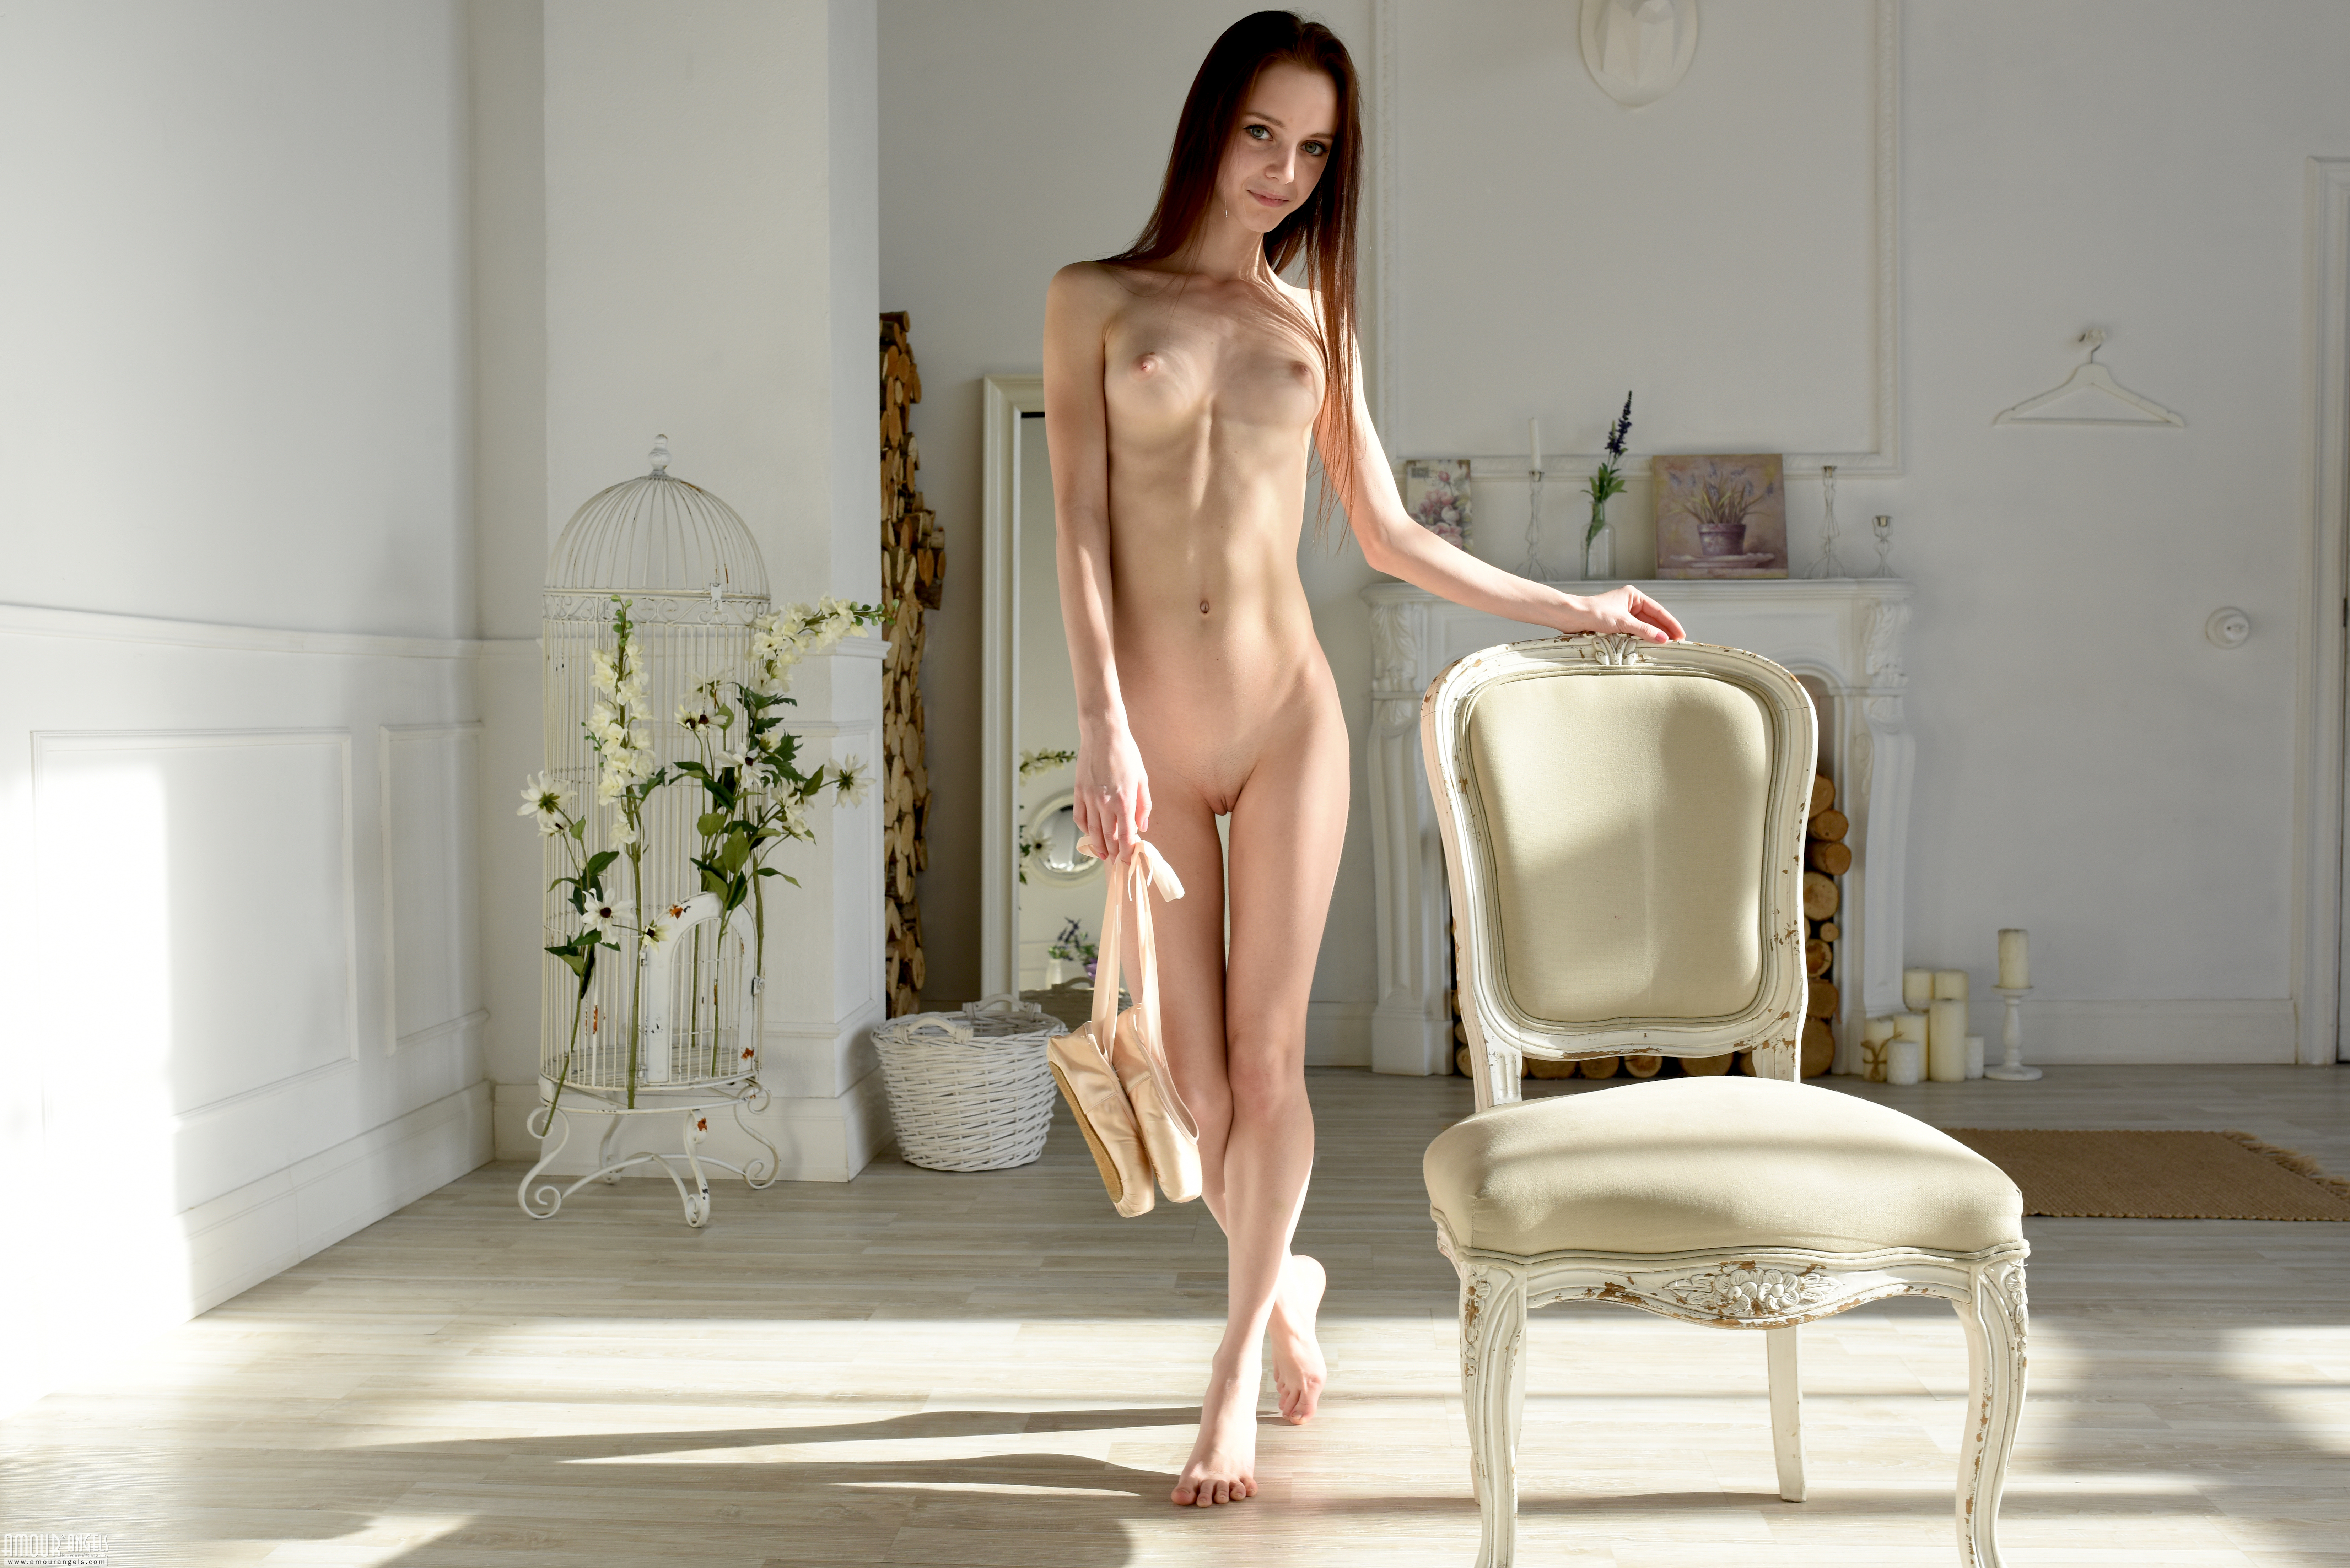 Lapa pussy in Wallpaper lapa, pala, taressa, model, babe, young, smile, russian, small  tits, tits, slim, pussy, shaved pussy, ballerina shoes, nude, skinny  desktop ...